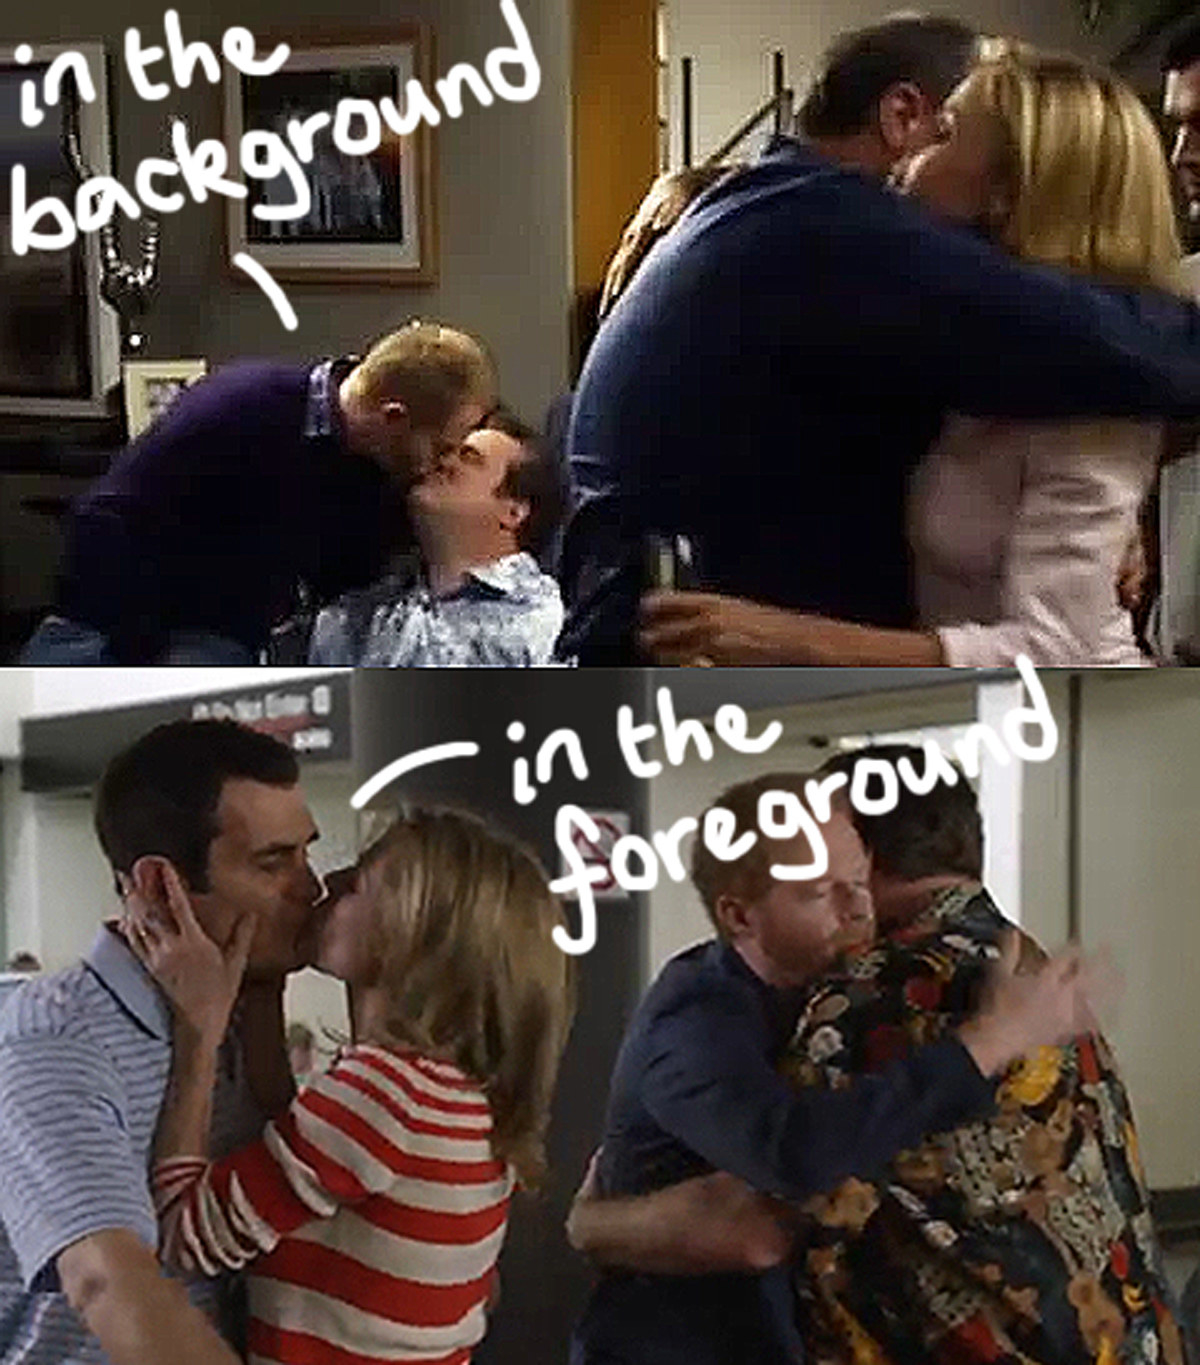 A dual image shows Mitch and Cam, a gay couple from Modern Family, kissing in the background of a shot and the other image shows a straight couple kissing in the foreground. Handwritten text on top points this out